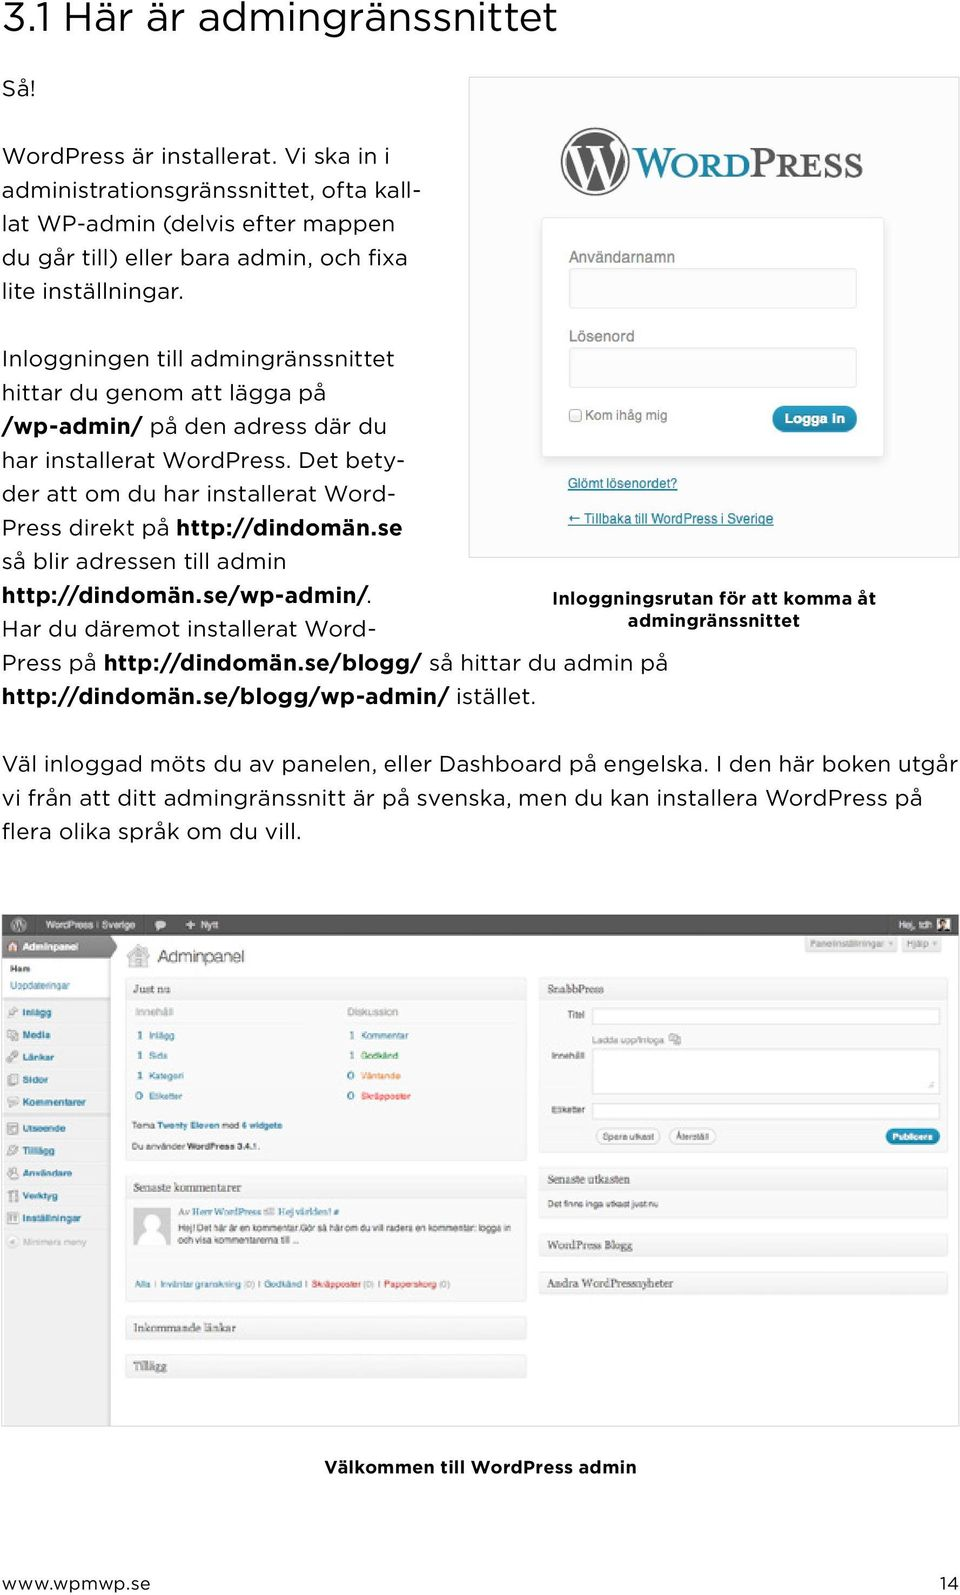 Inloggningen till admingränssnittet hittar du genom att lägga på /wp-admin/ på den adress där du har installerat WordPress. Det betyder att om du har installerat Word- Press direkt på http://dindomän.